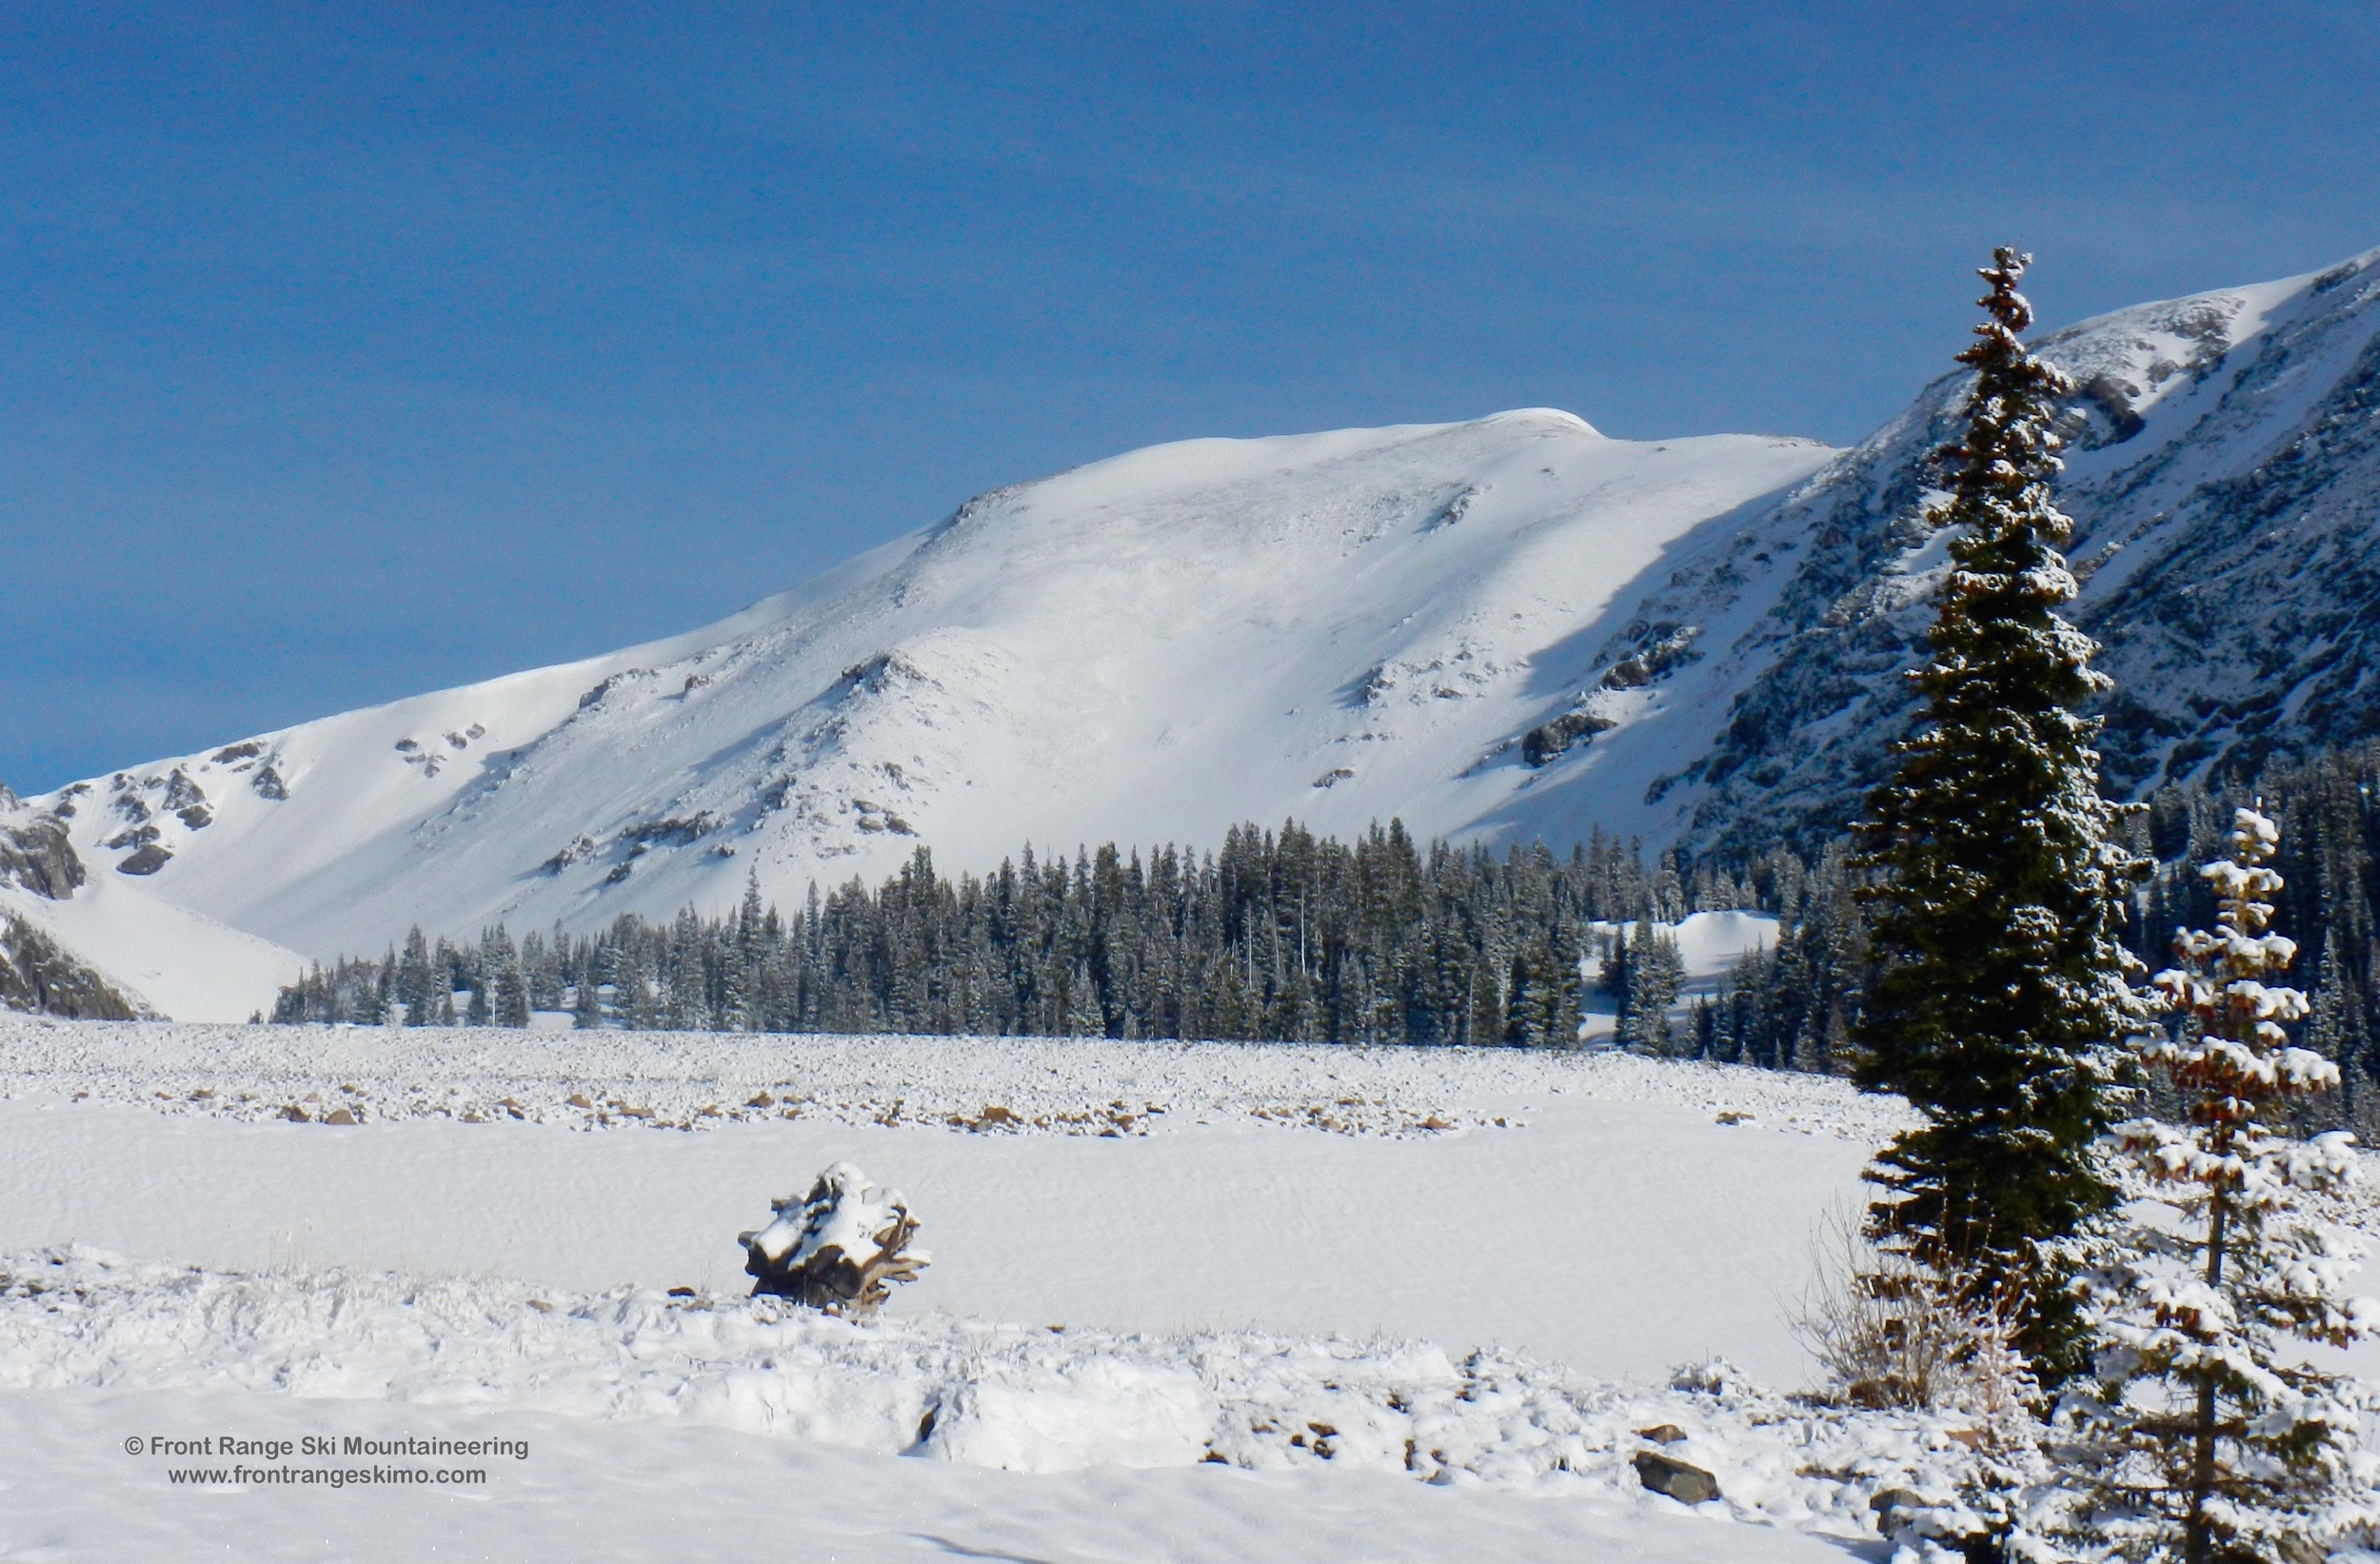 Parry Peak's Southeast Slope from Fall River Reservoir.